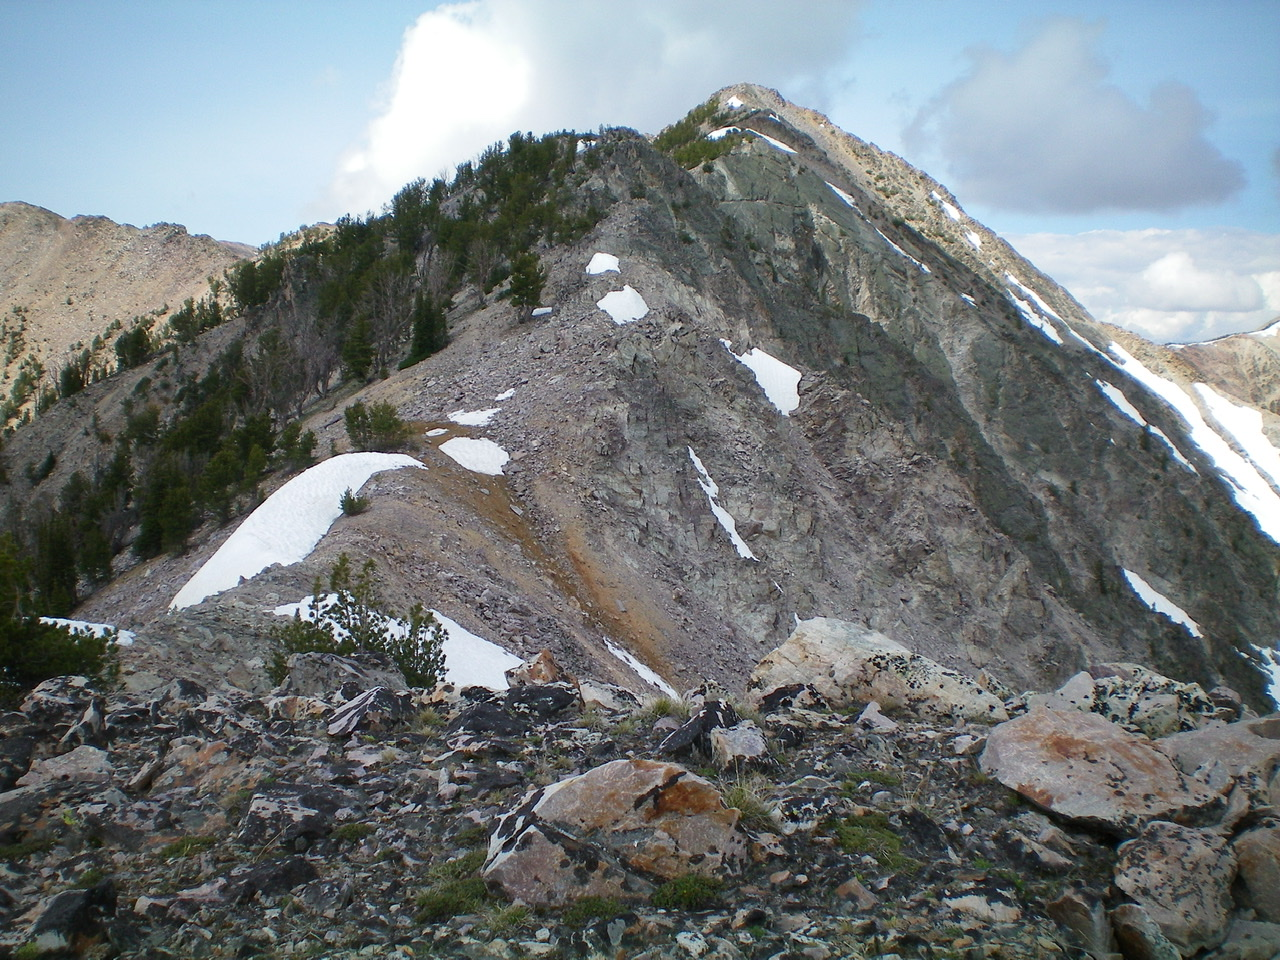 The East Ridge of Peak 10310 as viewed from Point 9997. It is much easier than it looks. Livingston Douglas Photo